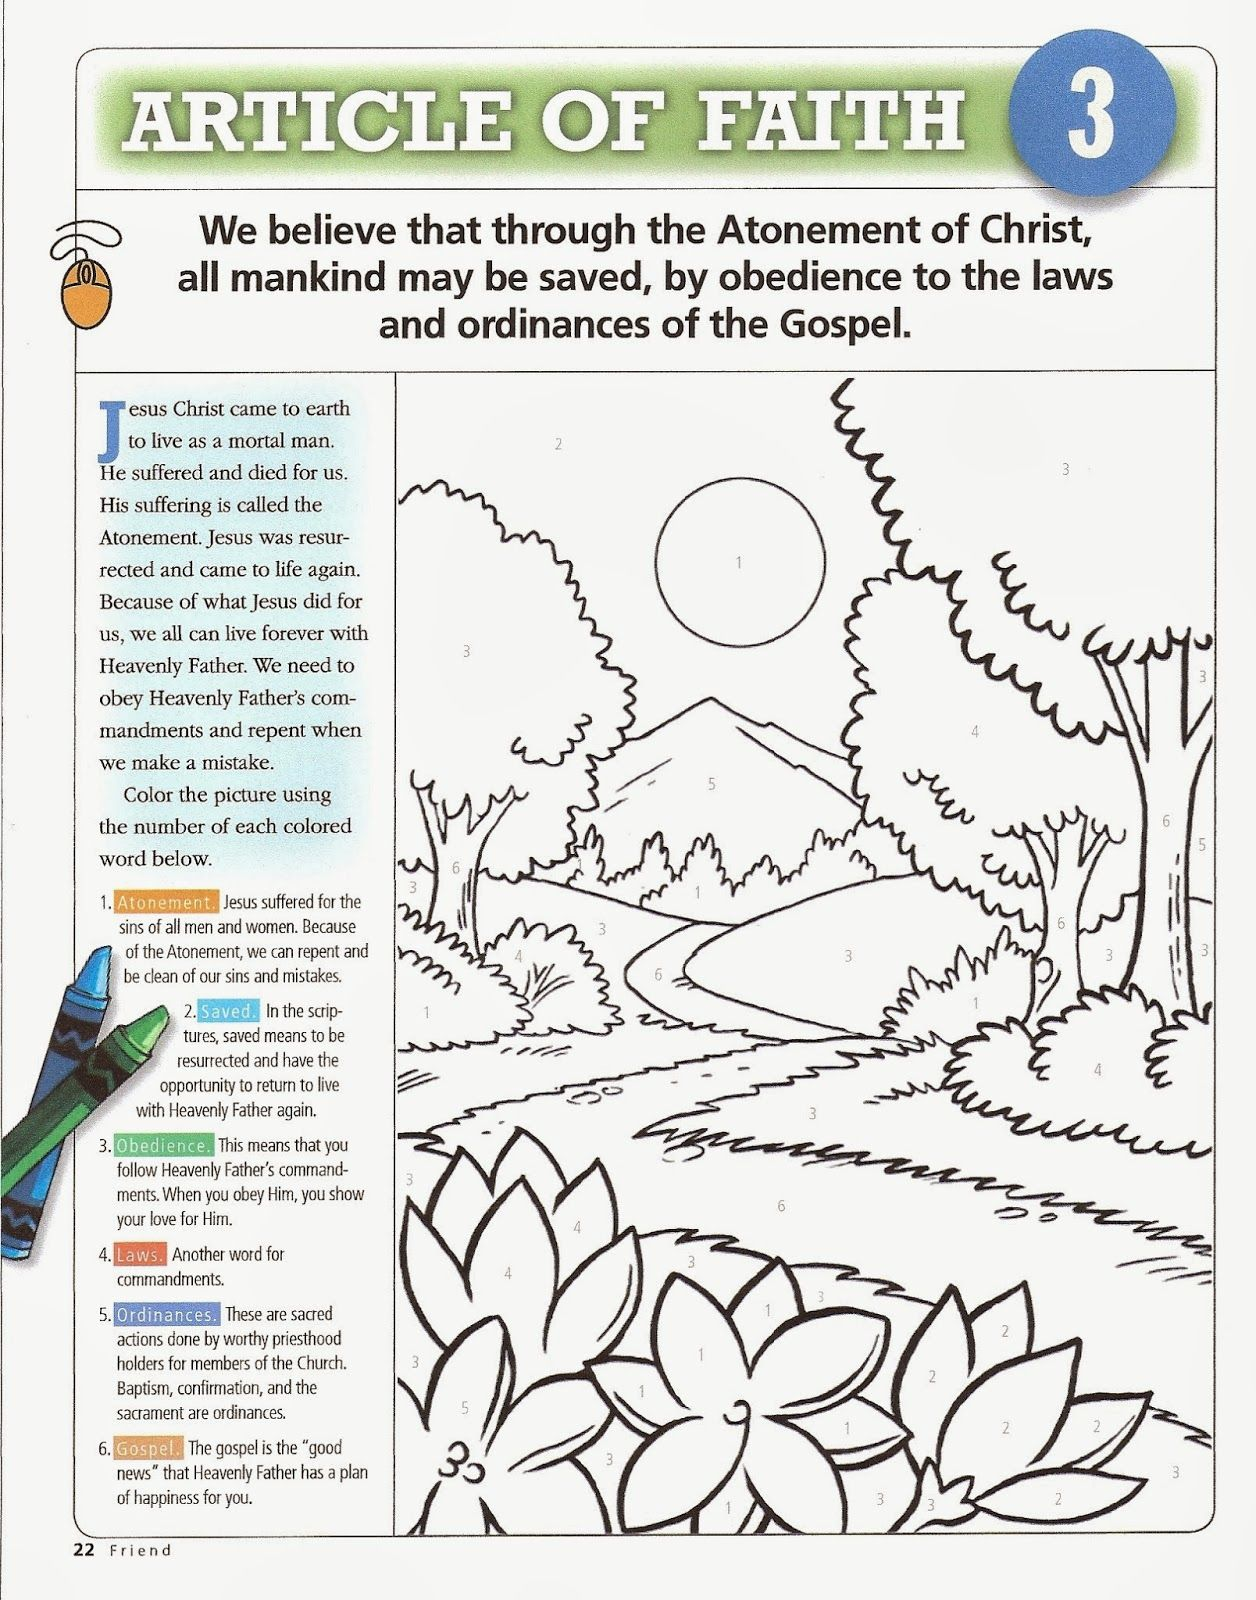 Primary 5 Manual Lesson 36 Joseph Smith Writes The